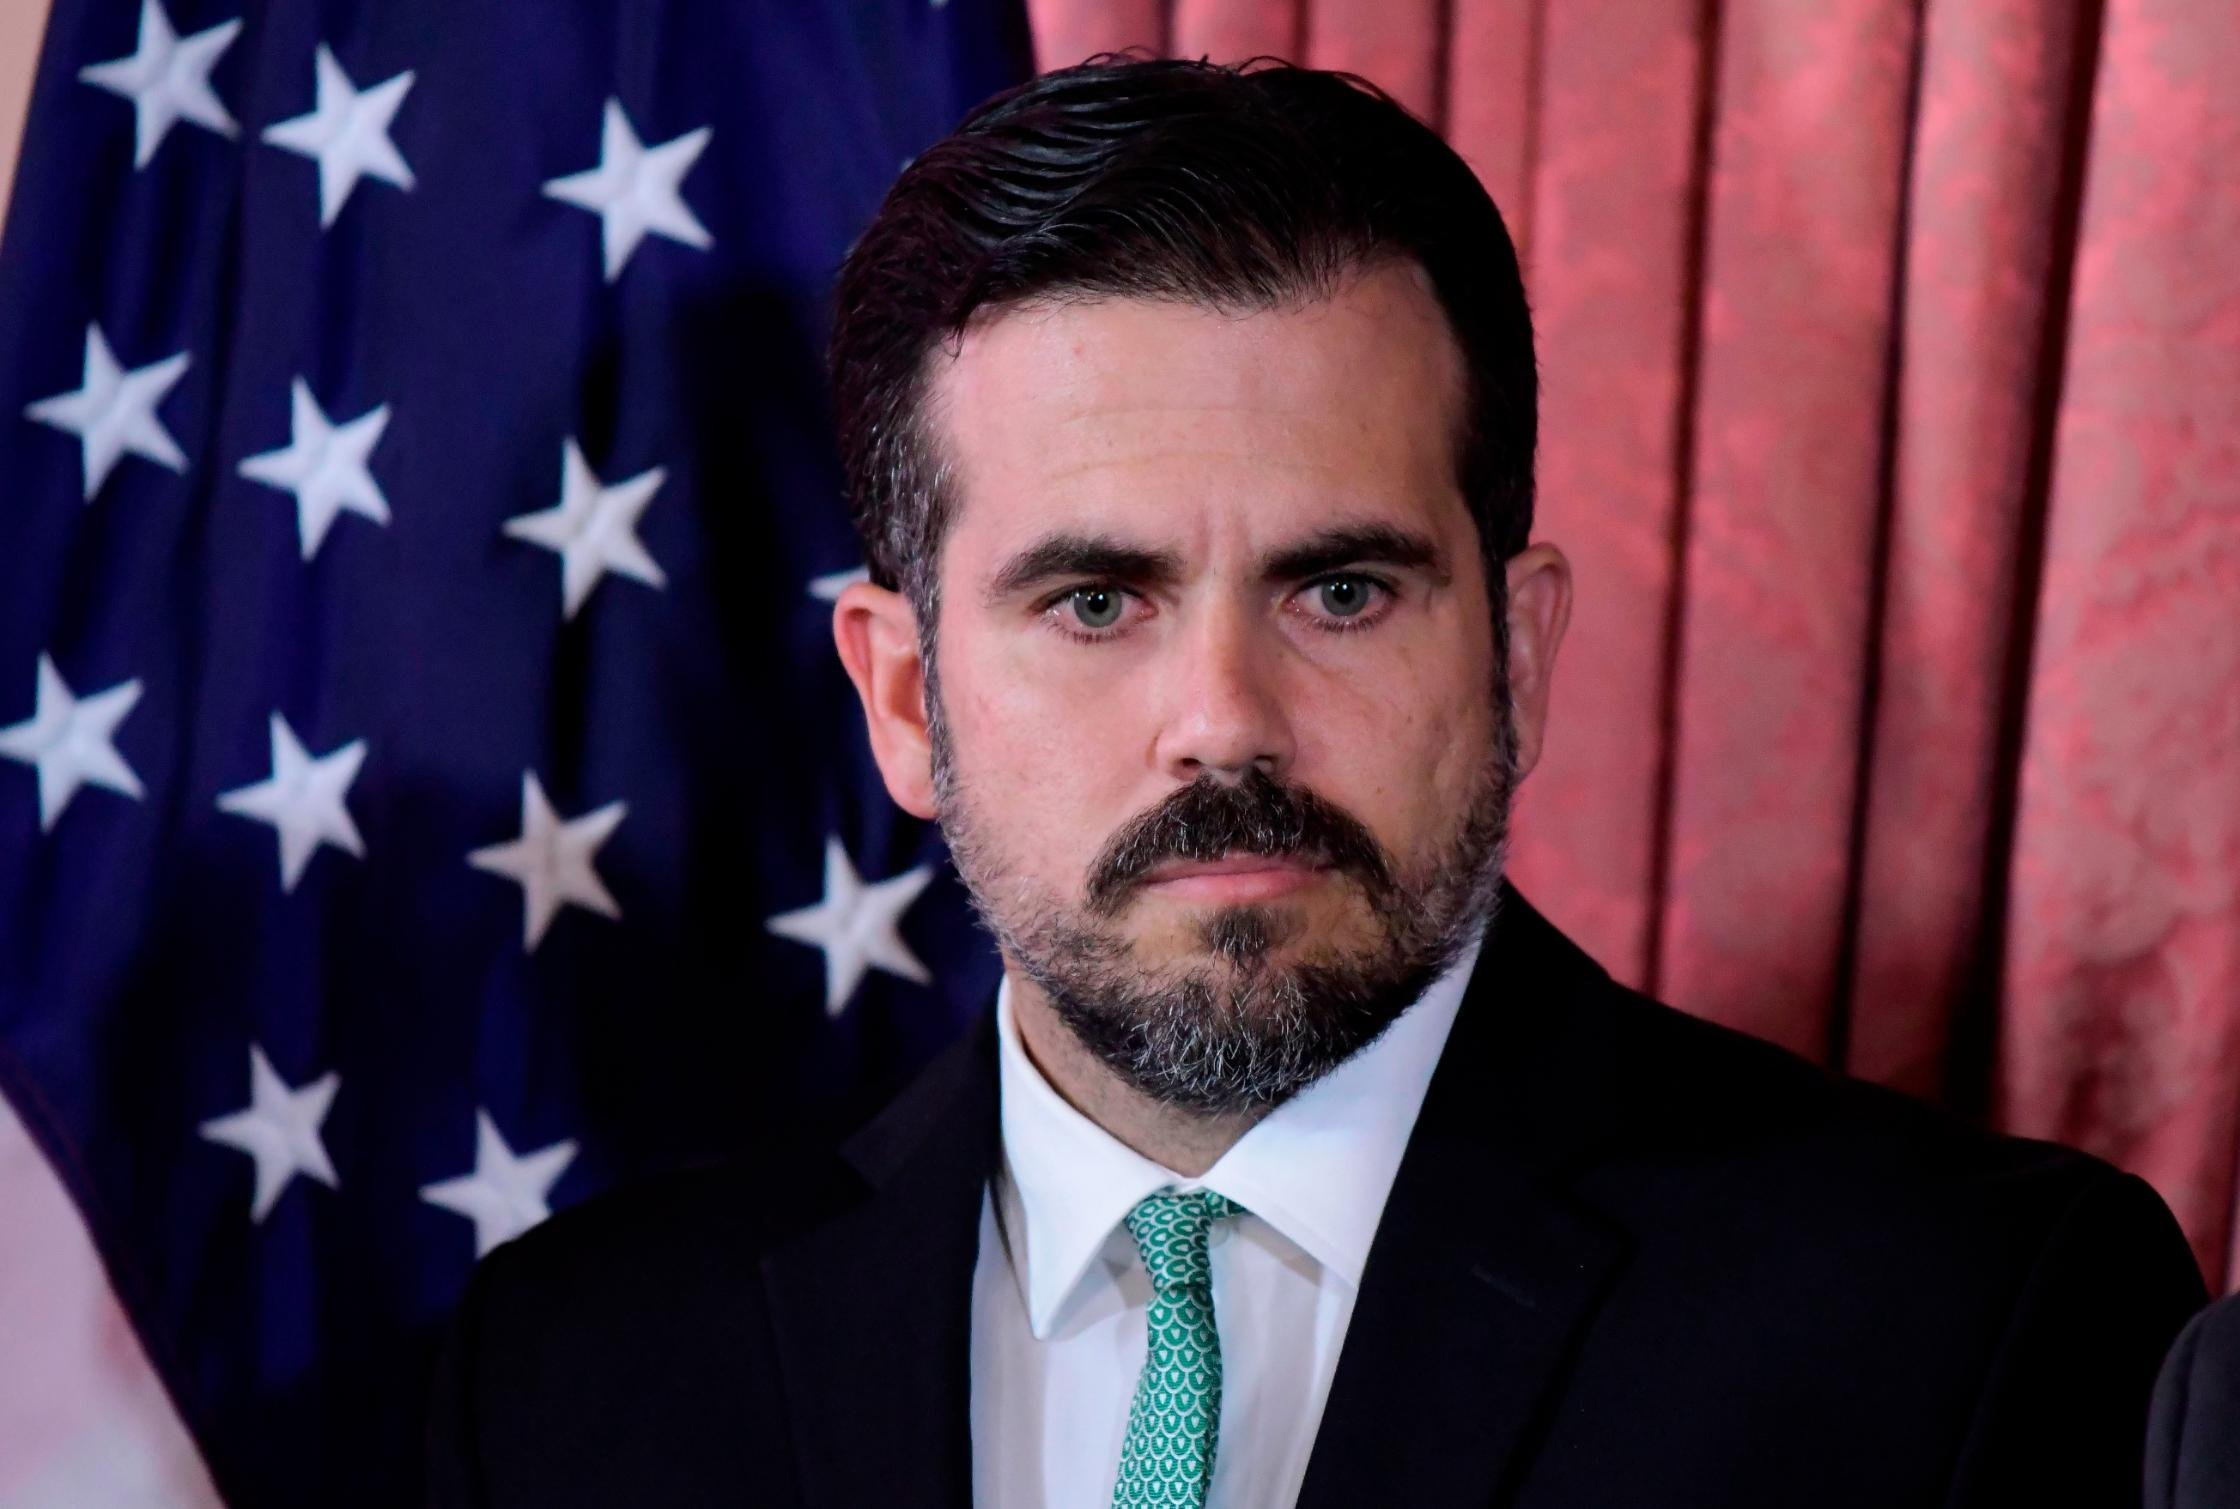 Puerto Rico's justice department summons officials involved in homophobic and misogynistic chats